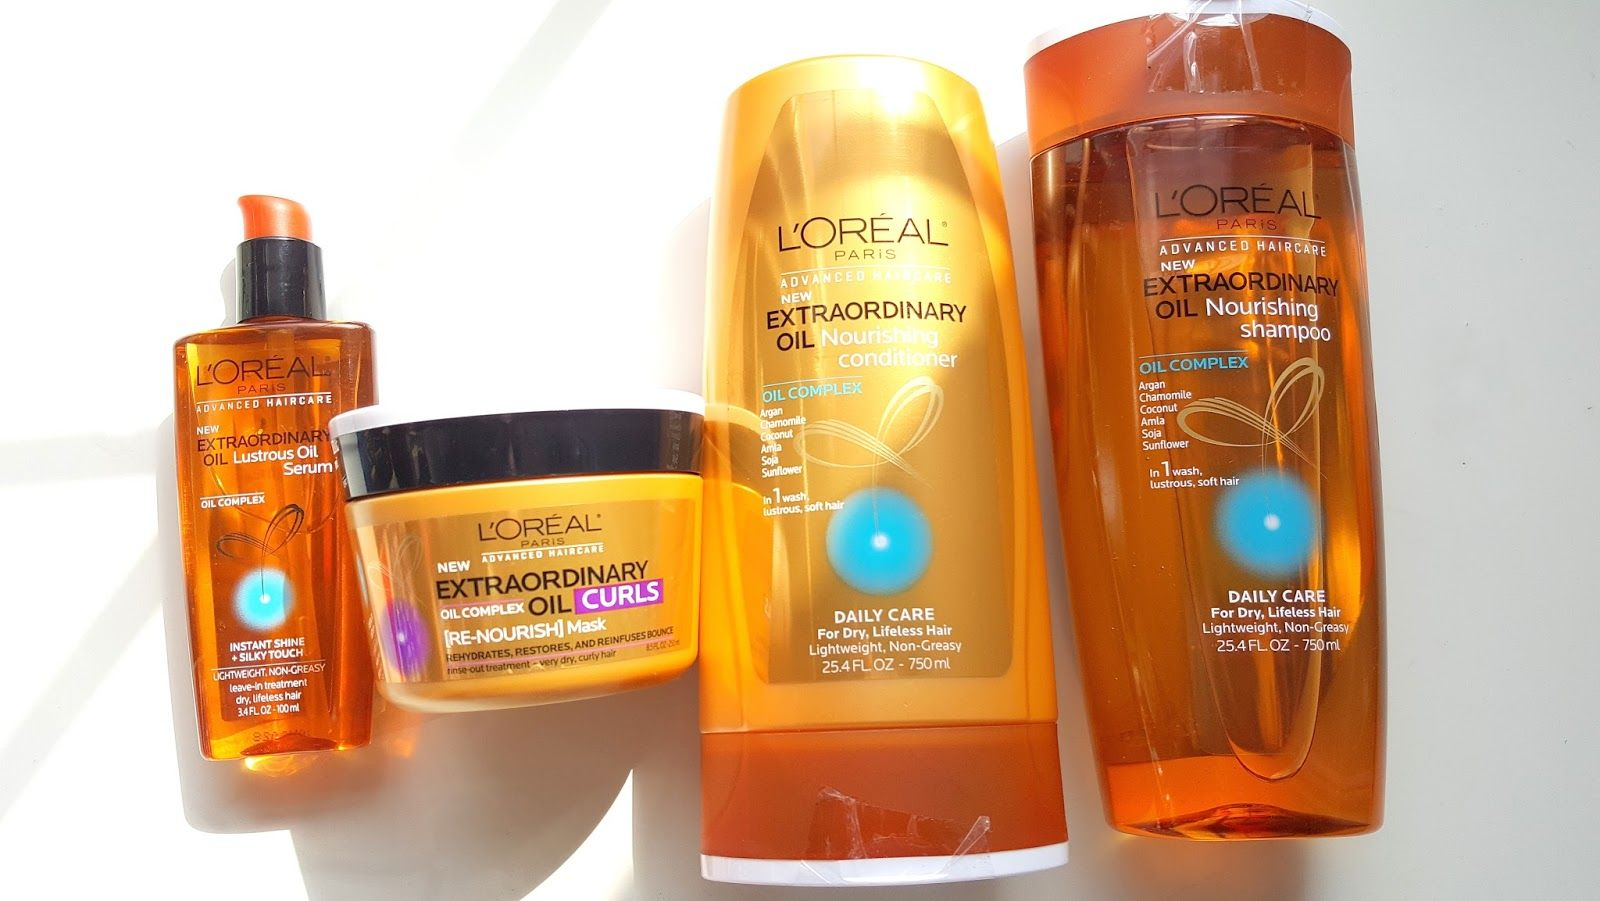 L'OREAL PARIS ADVANCED HAIRCARE EXTRAORDINARY OIL REVIEW